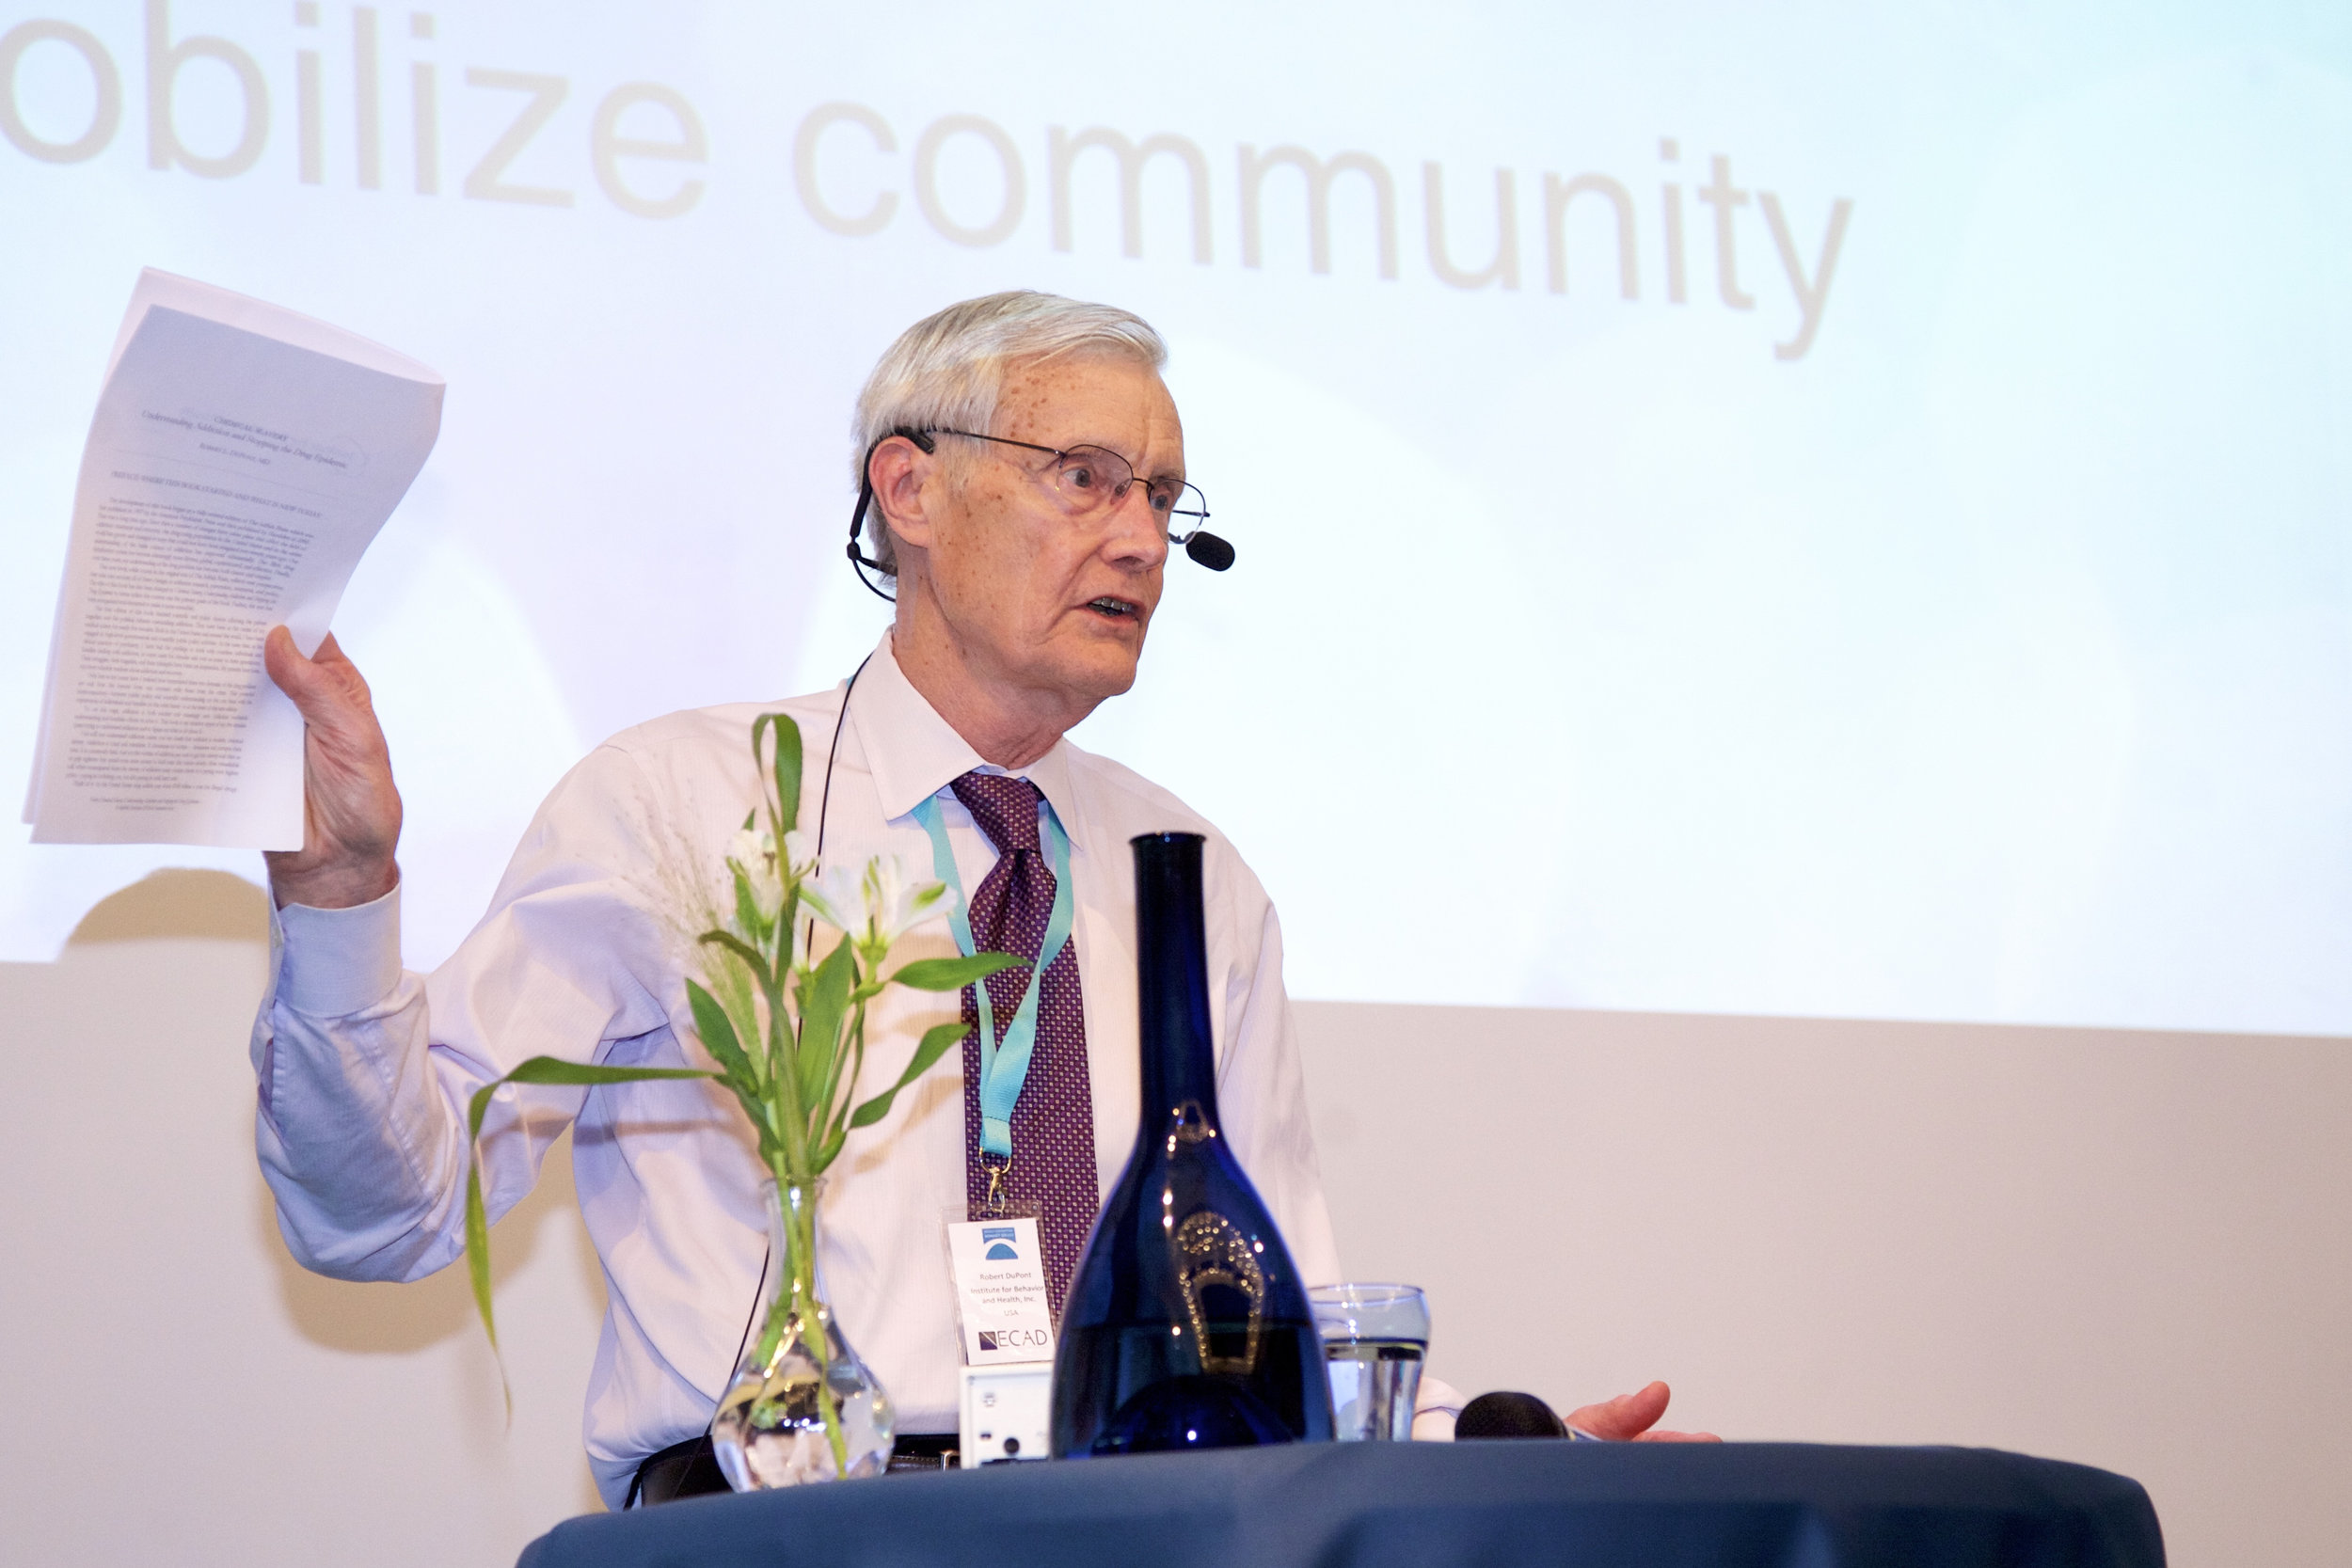 Robert L. DuPont, MD at 2018 World Forum, photo credit: Christoffer Bergström